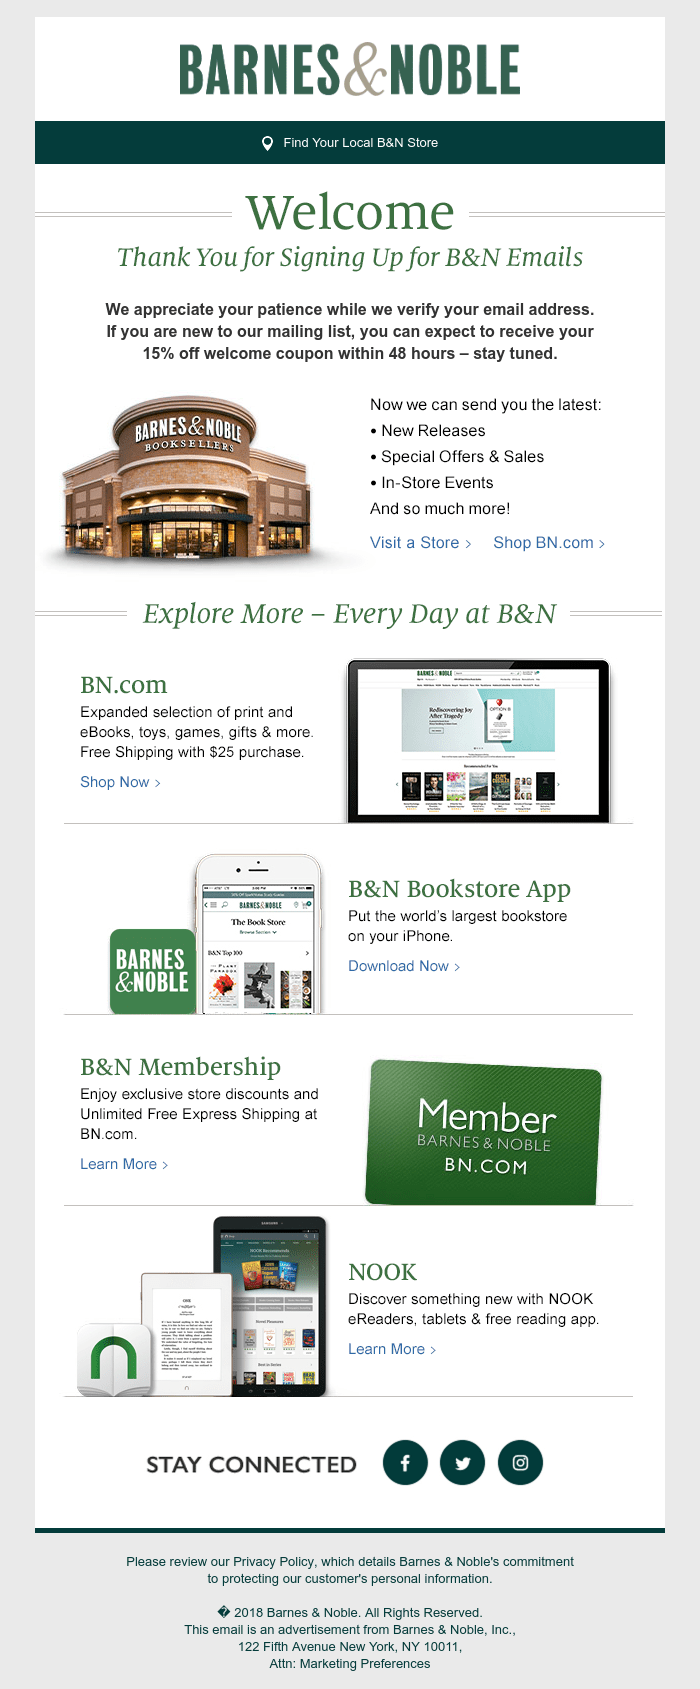 Welcome message screenshot from Barnes & Noble